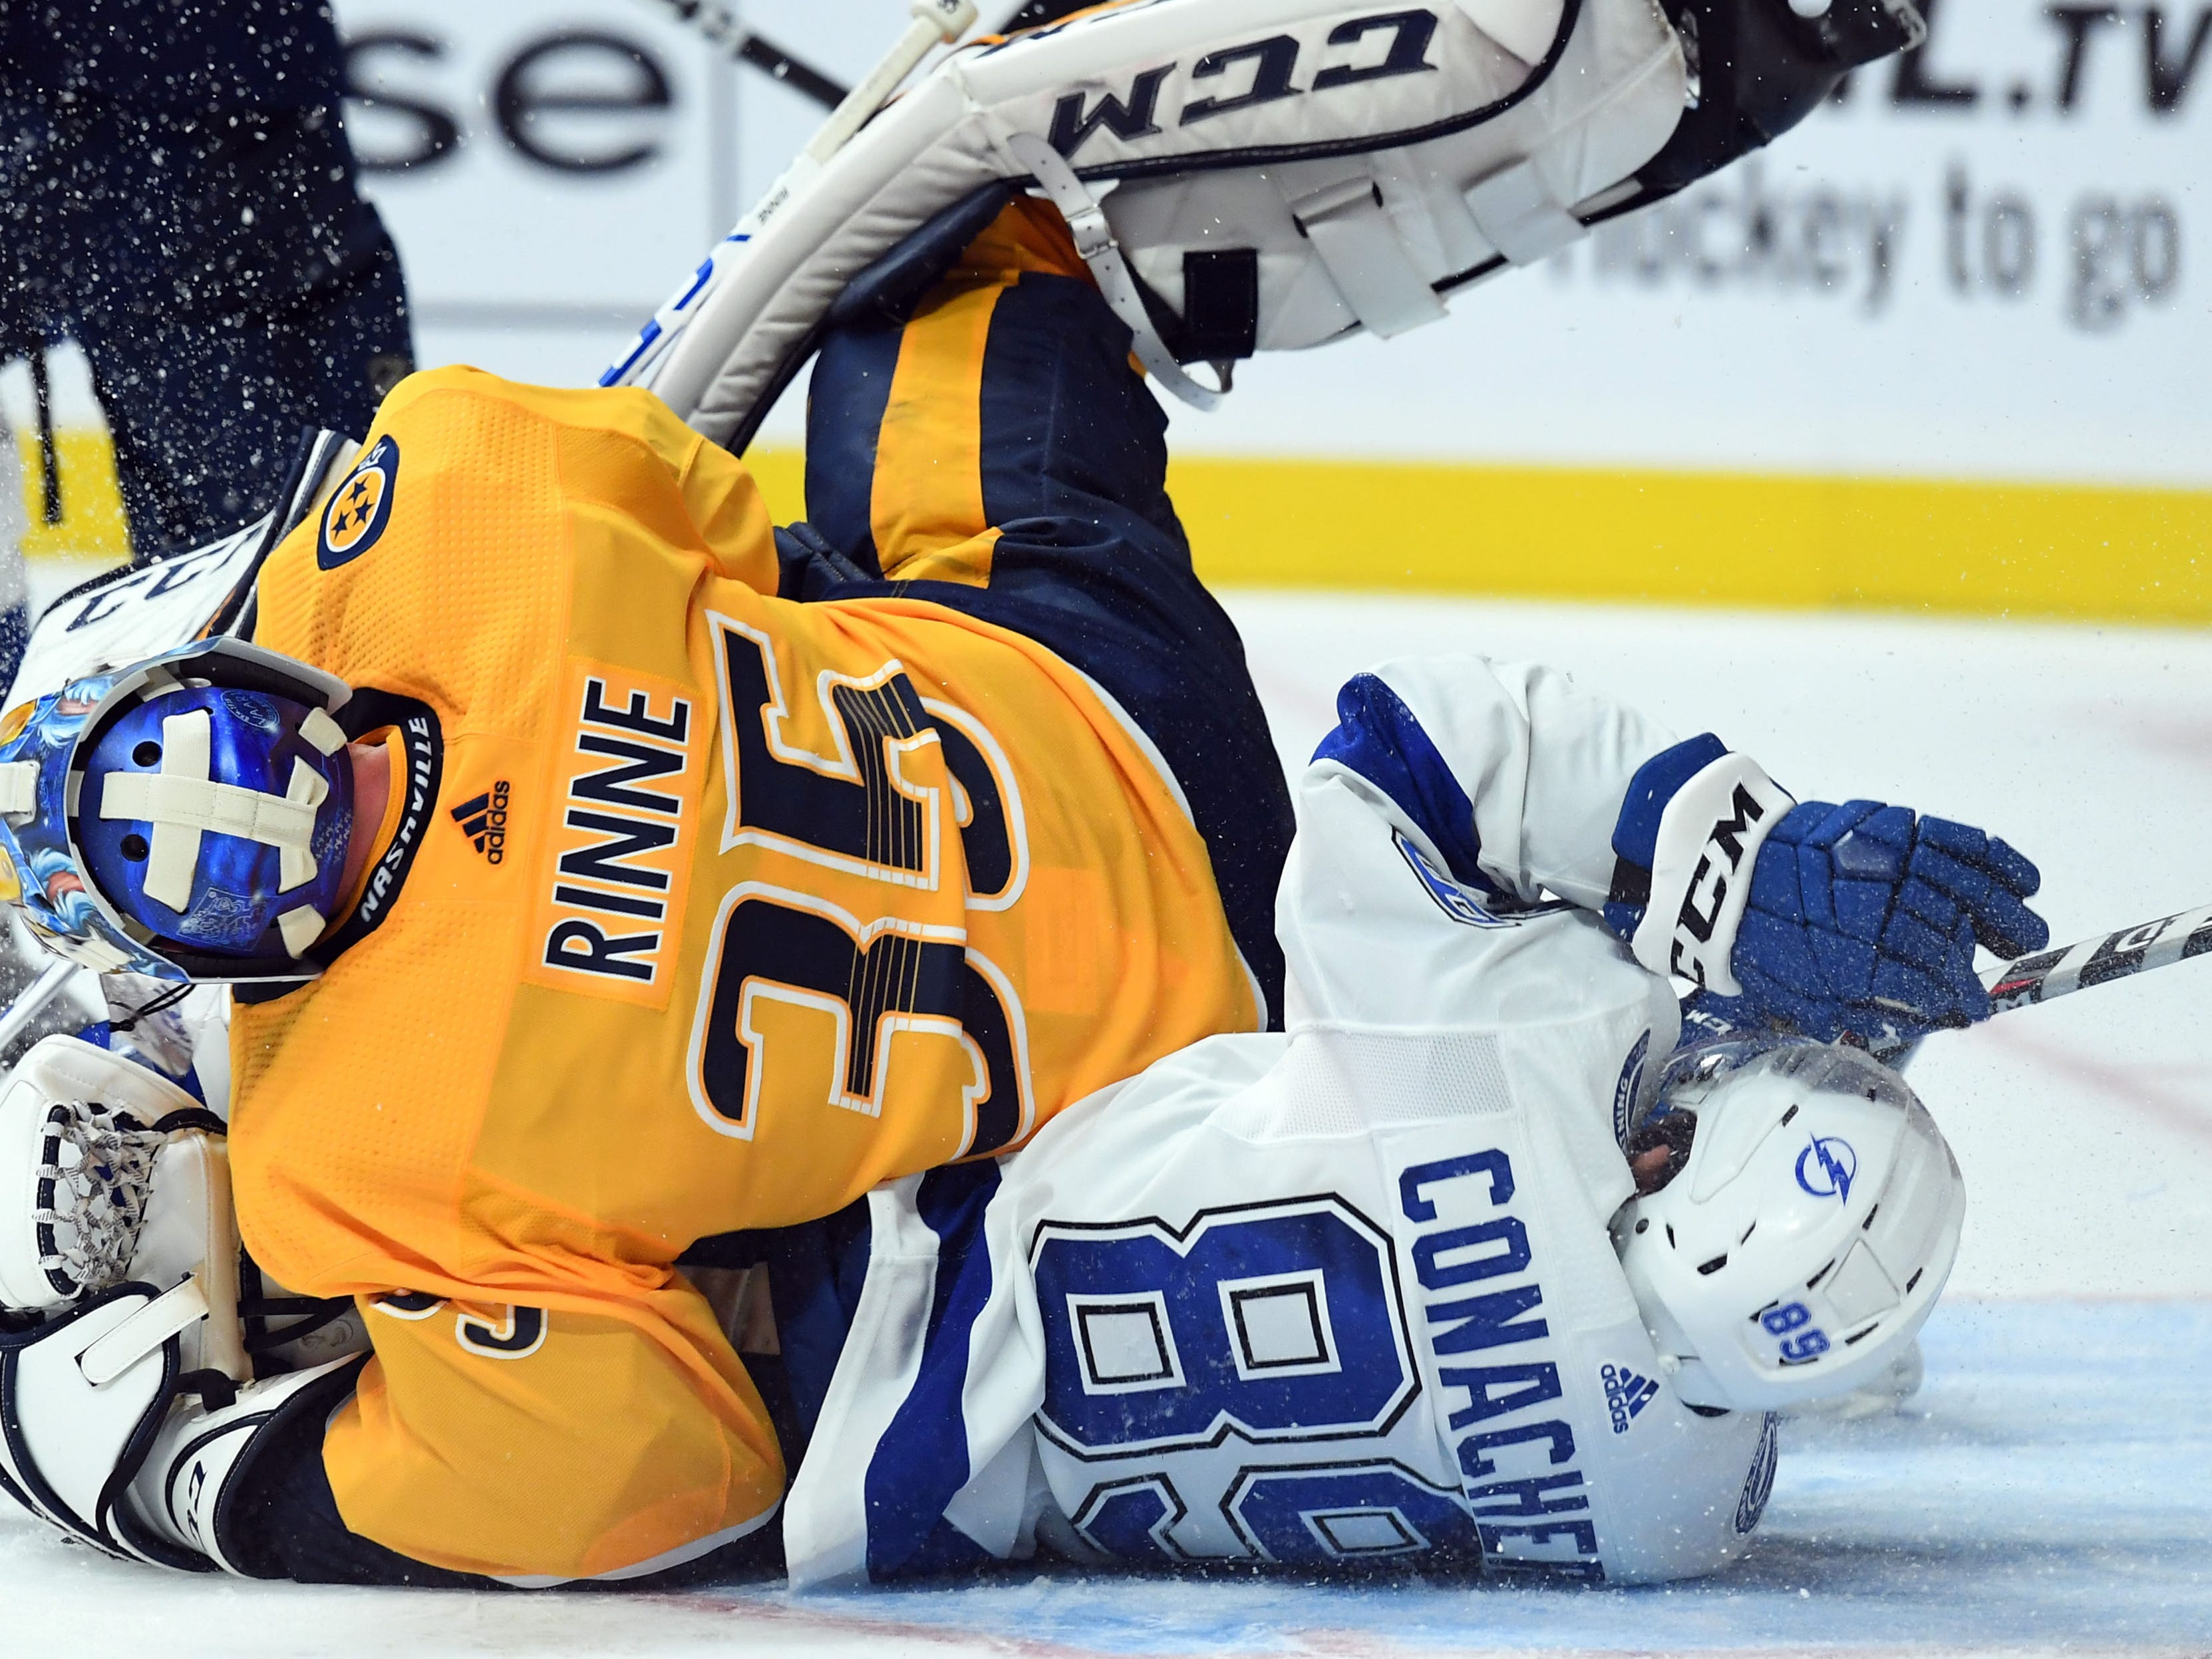 Sept. 21: Tampa Bay Lightning center Cory Conacher is hit into Nashville Predators goaltender Pekka Rinne.